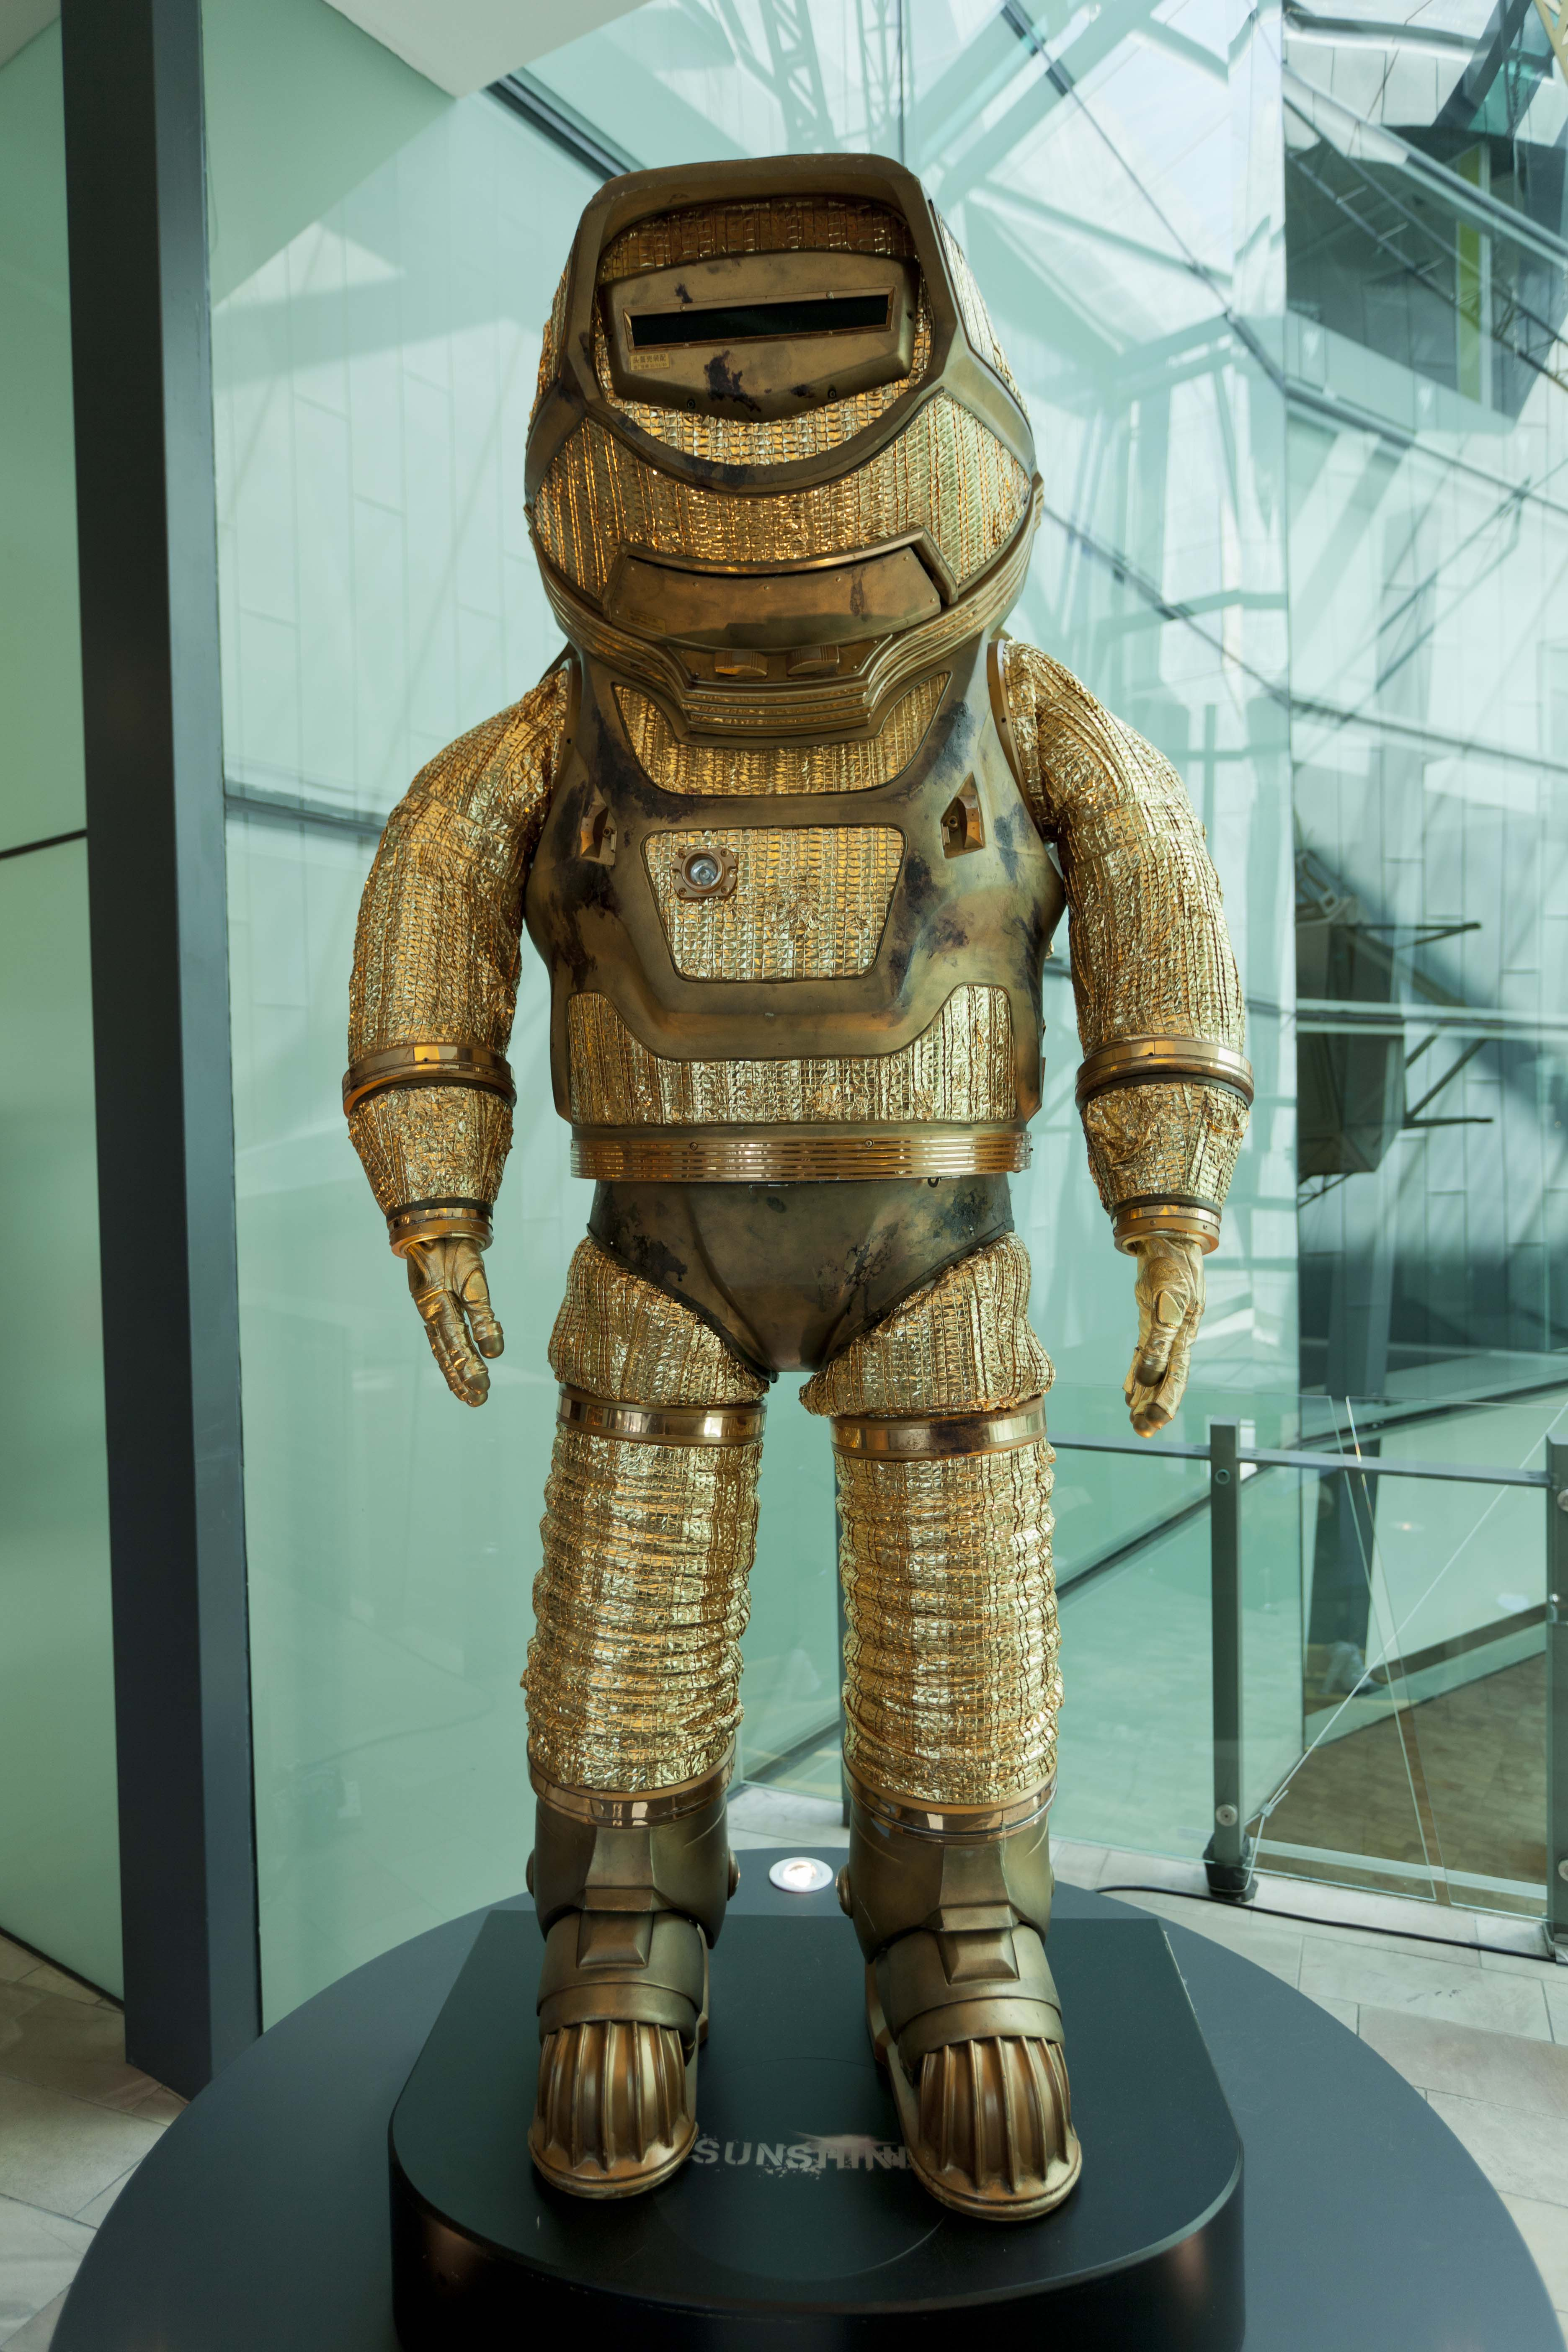 sunshine space suit - photo #5